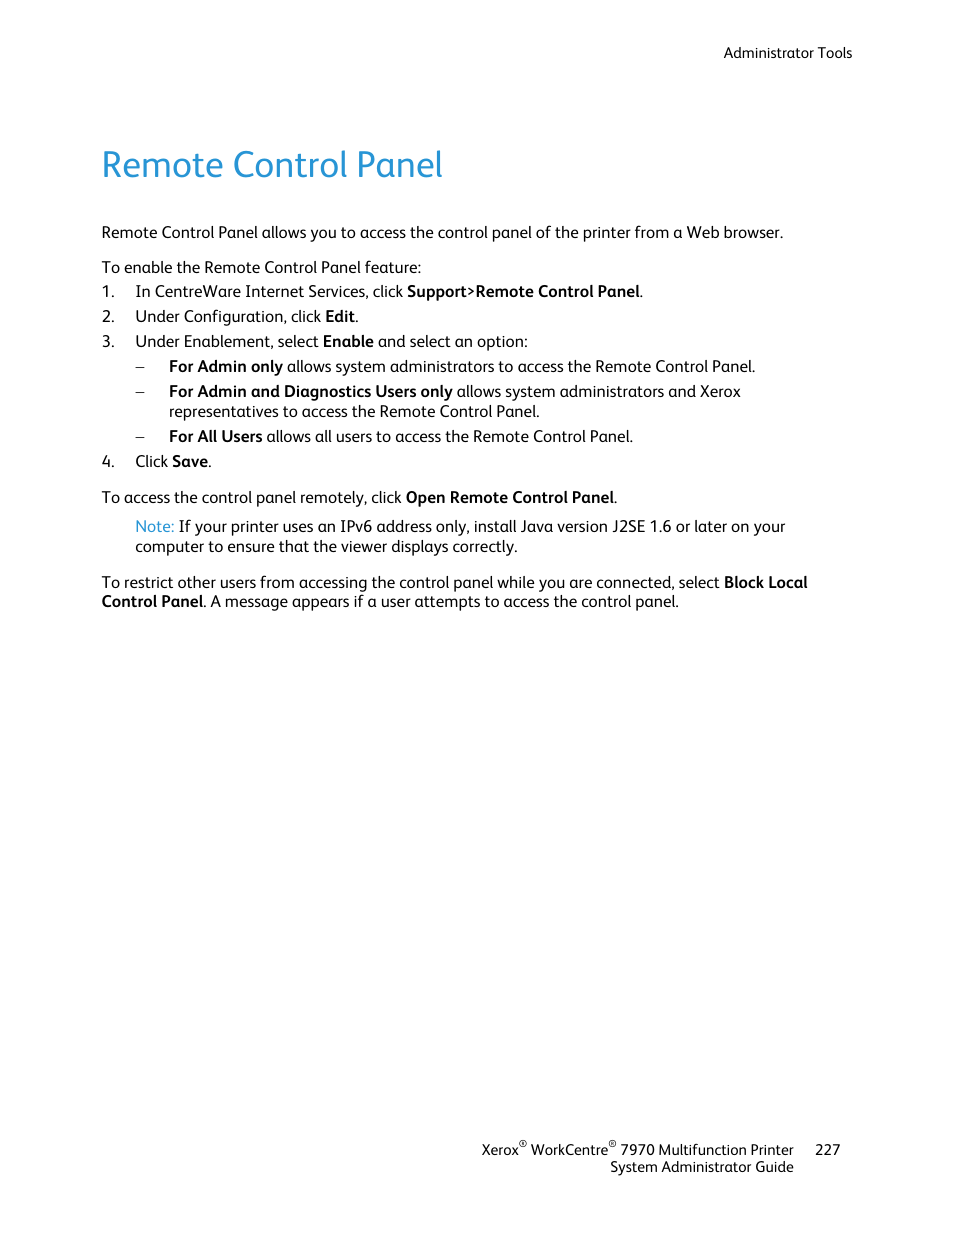 open control panel remotely